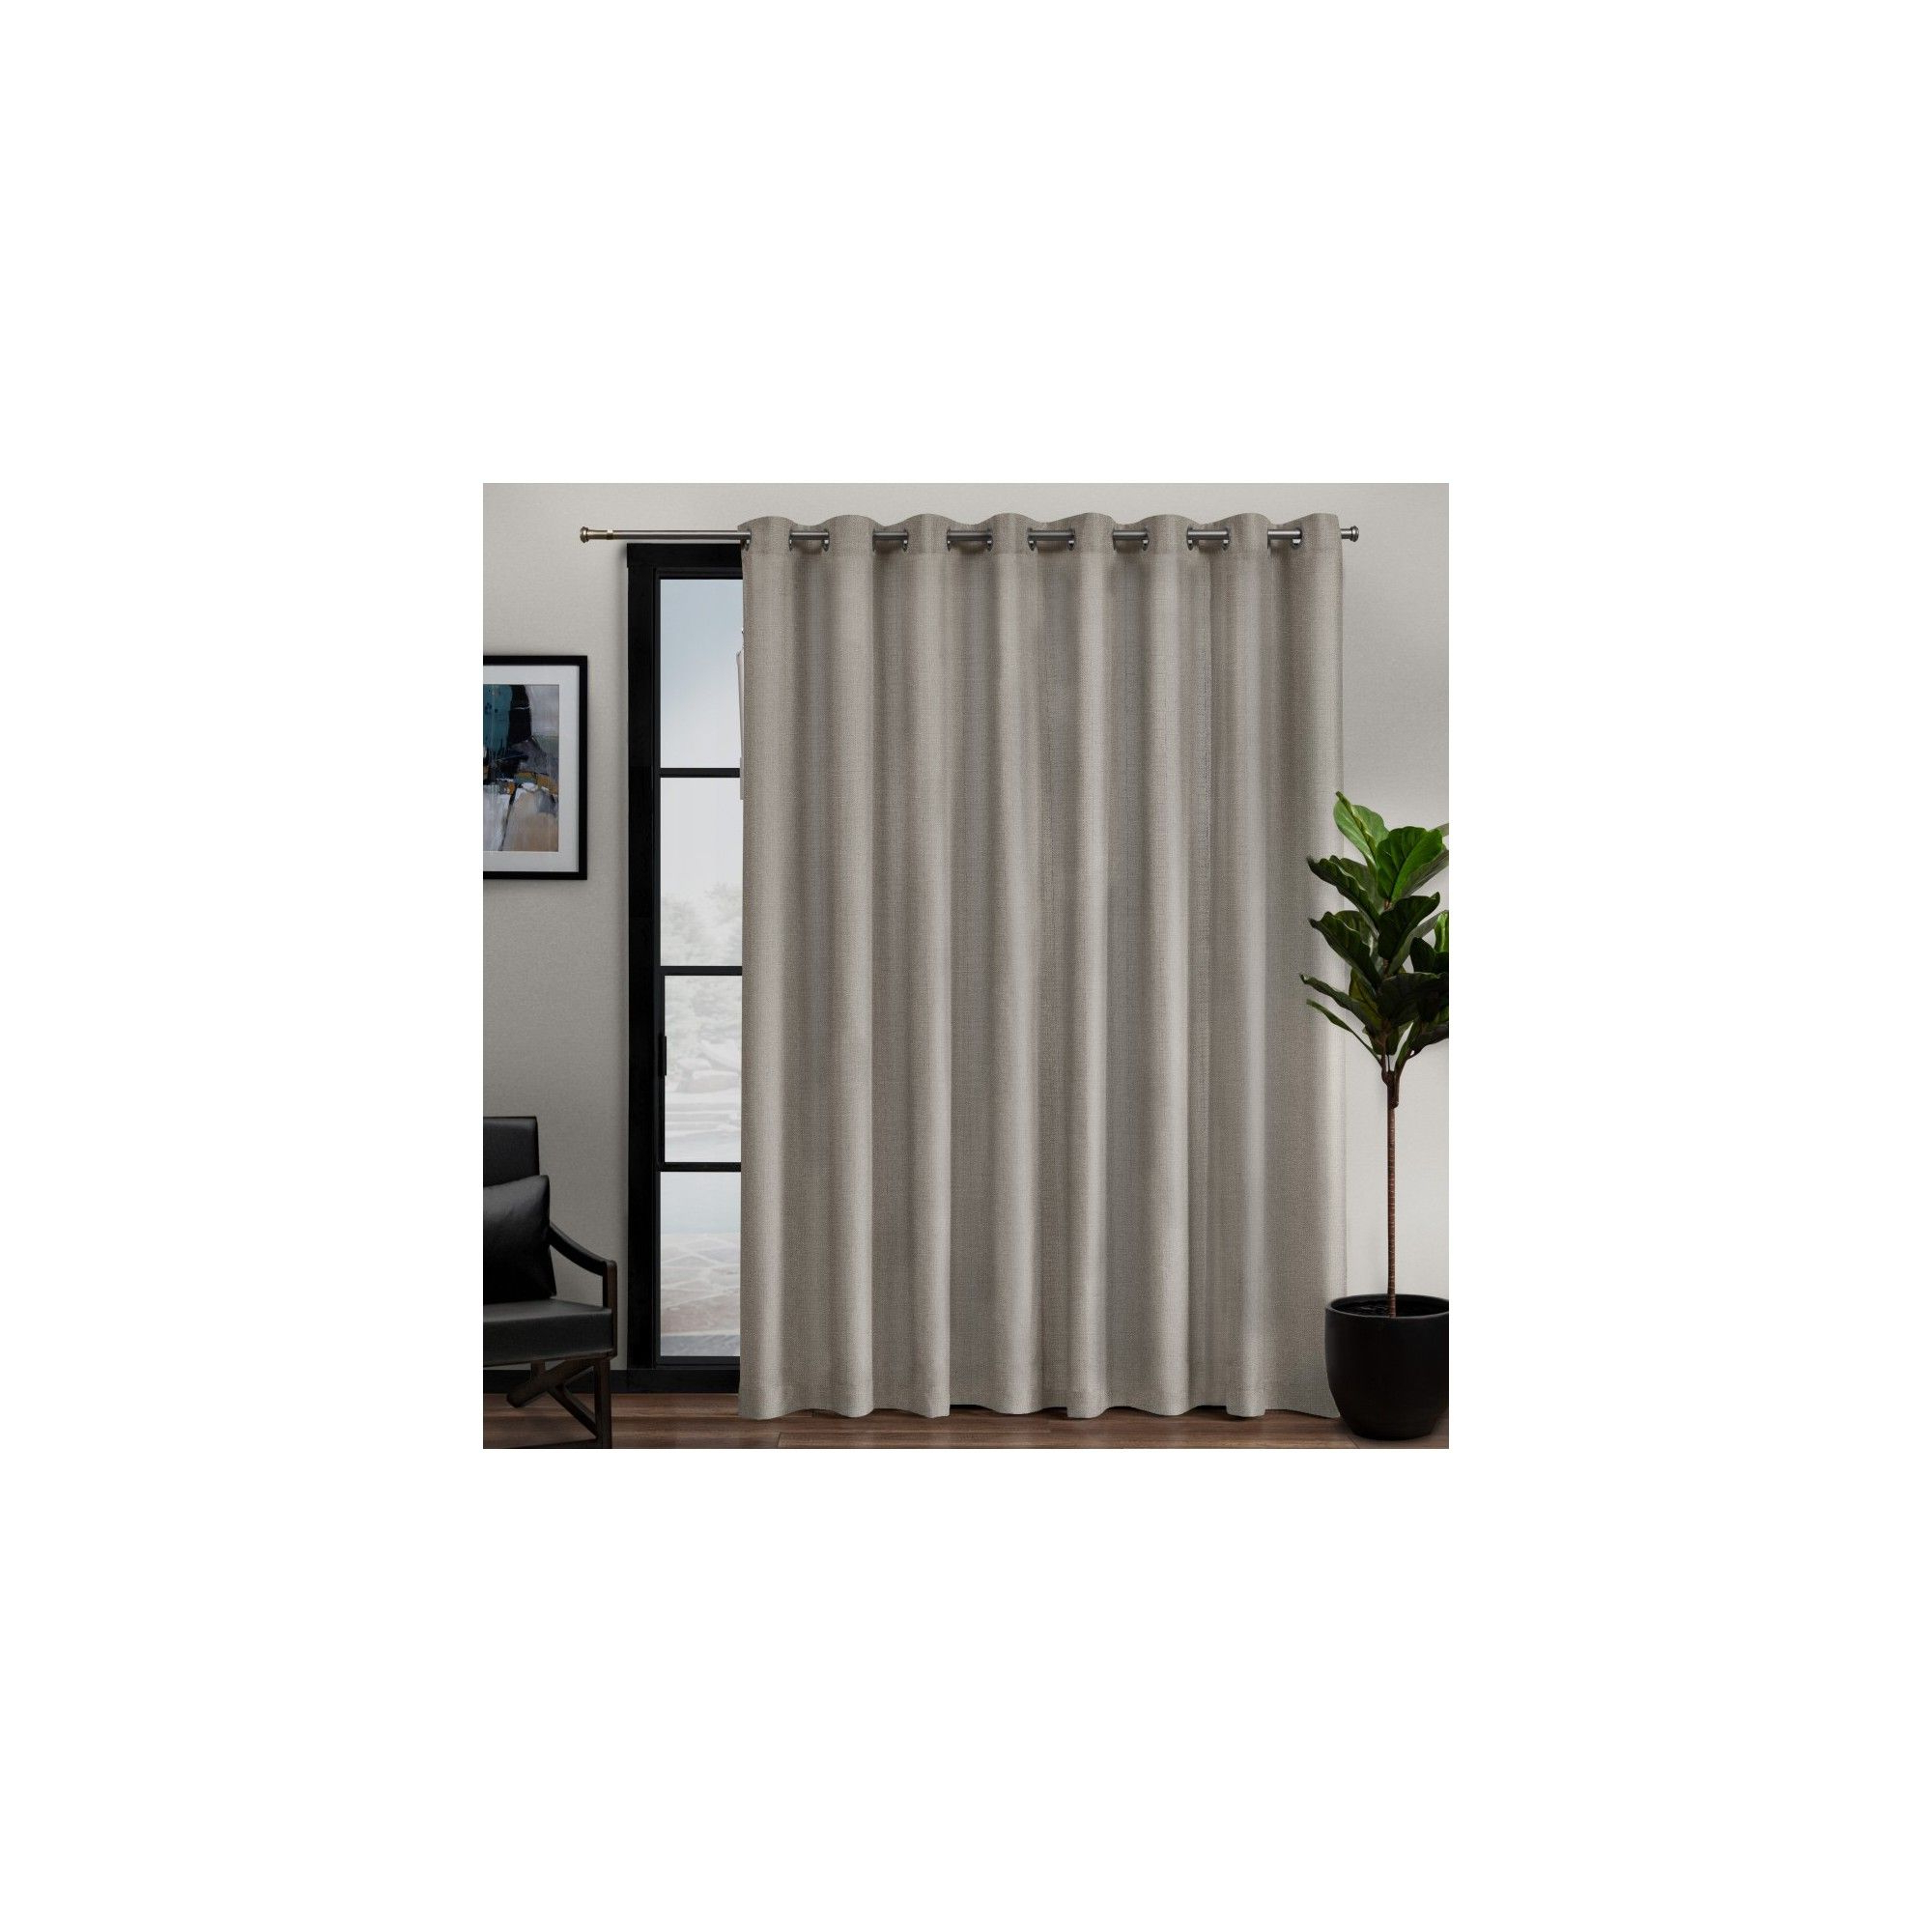 "108""x84"" Loha Patio Grommet Top Single Curtain Panel Beige In Well Known Patio Grommet Top Single Curtain Panels (View 11 of 20)"